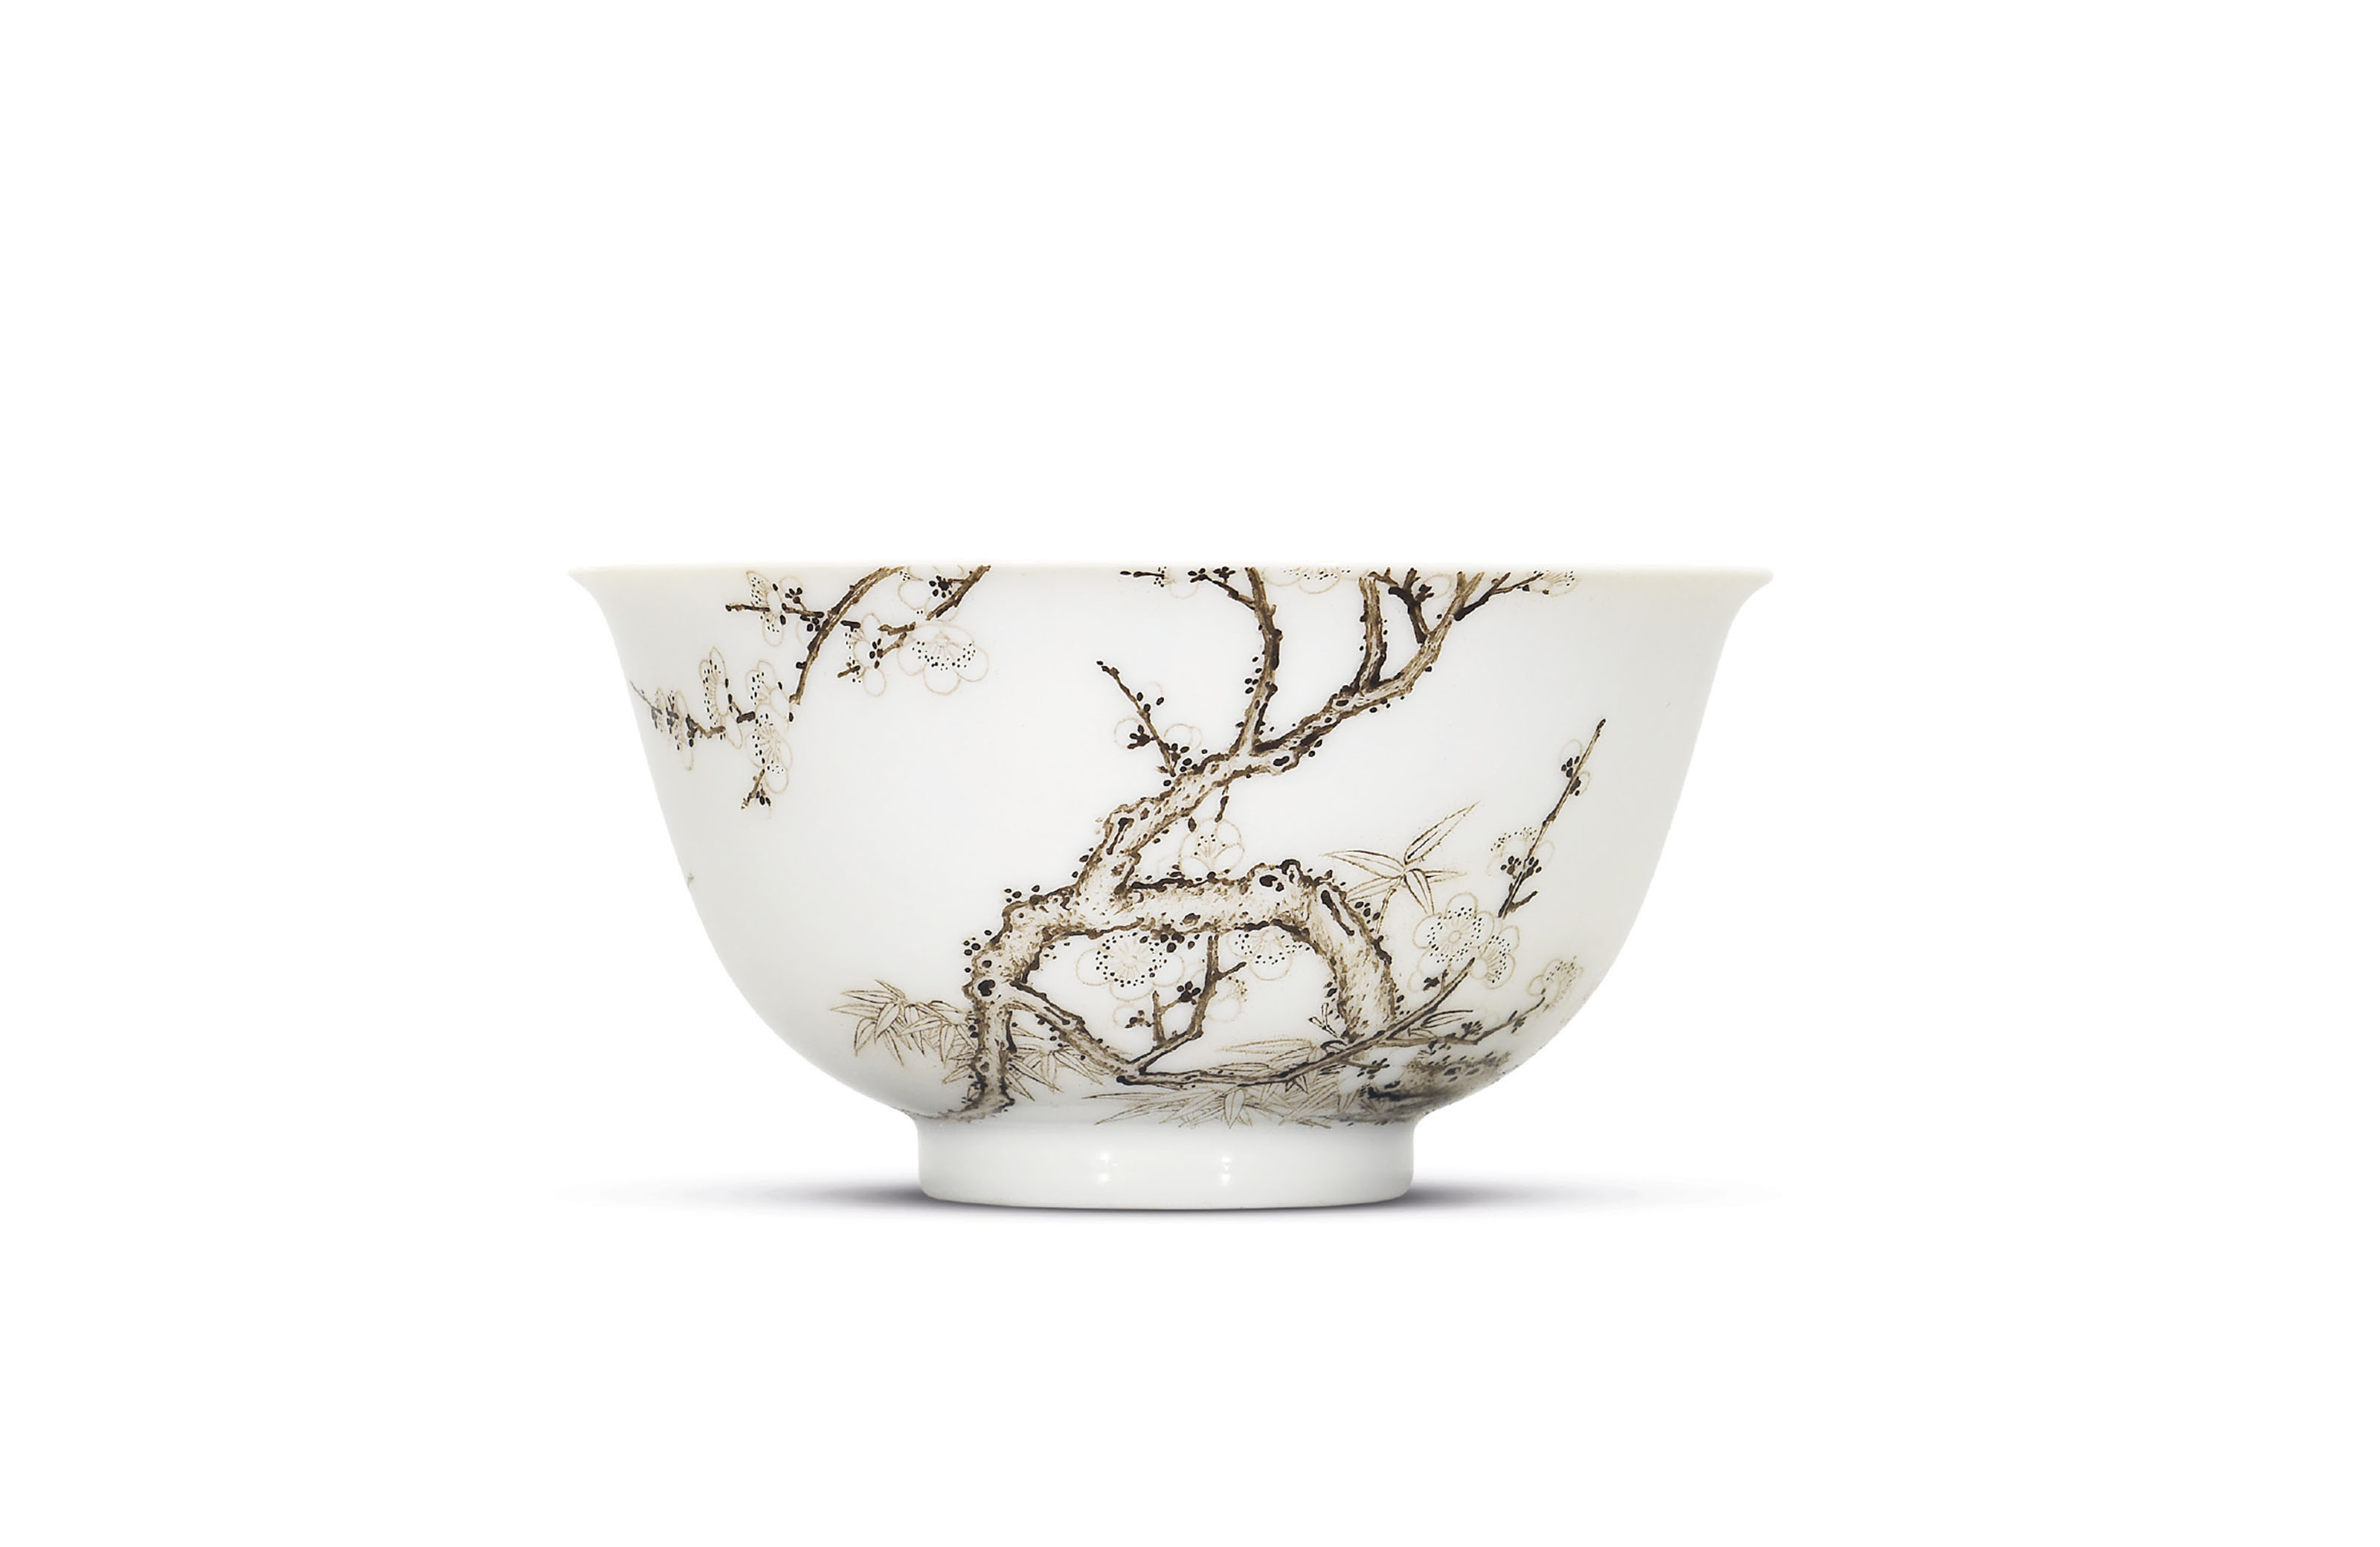 A FINE AND IMPORTANT FALANGCAI SEPIA-ENAMELLED 'PRUNUS AND BAMBOO' BOWL